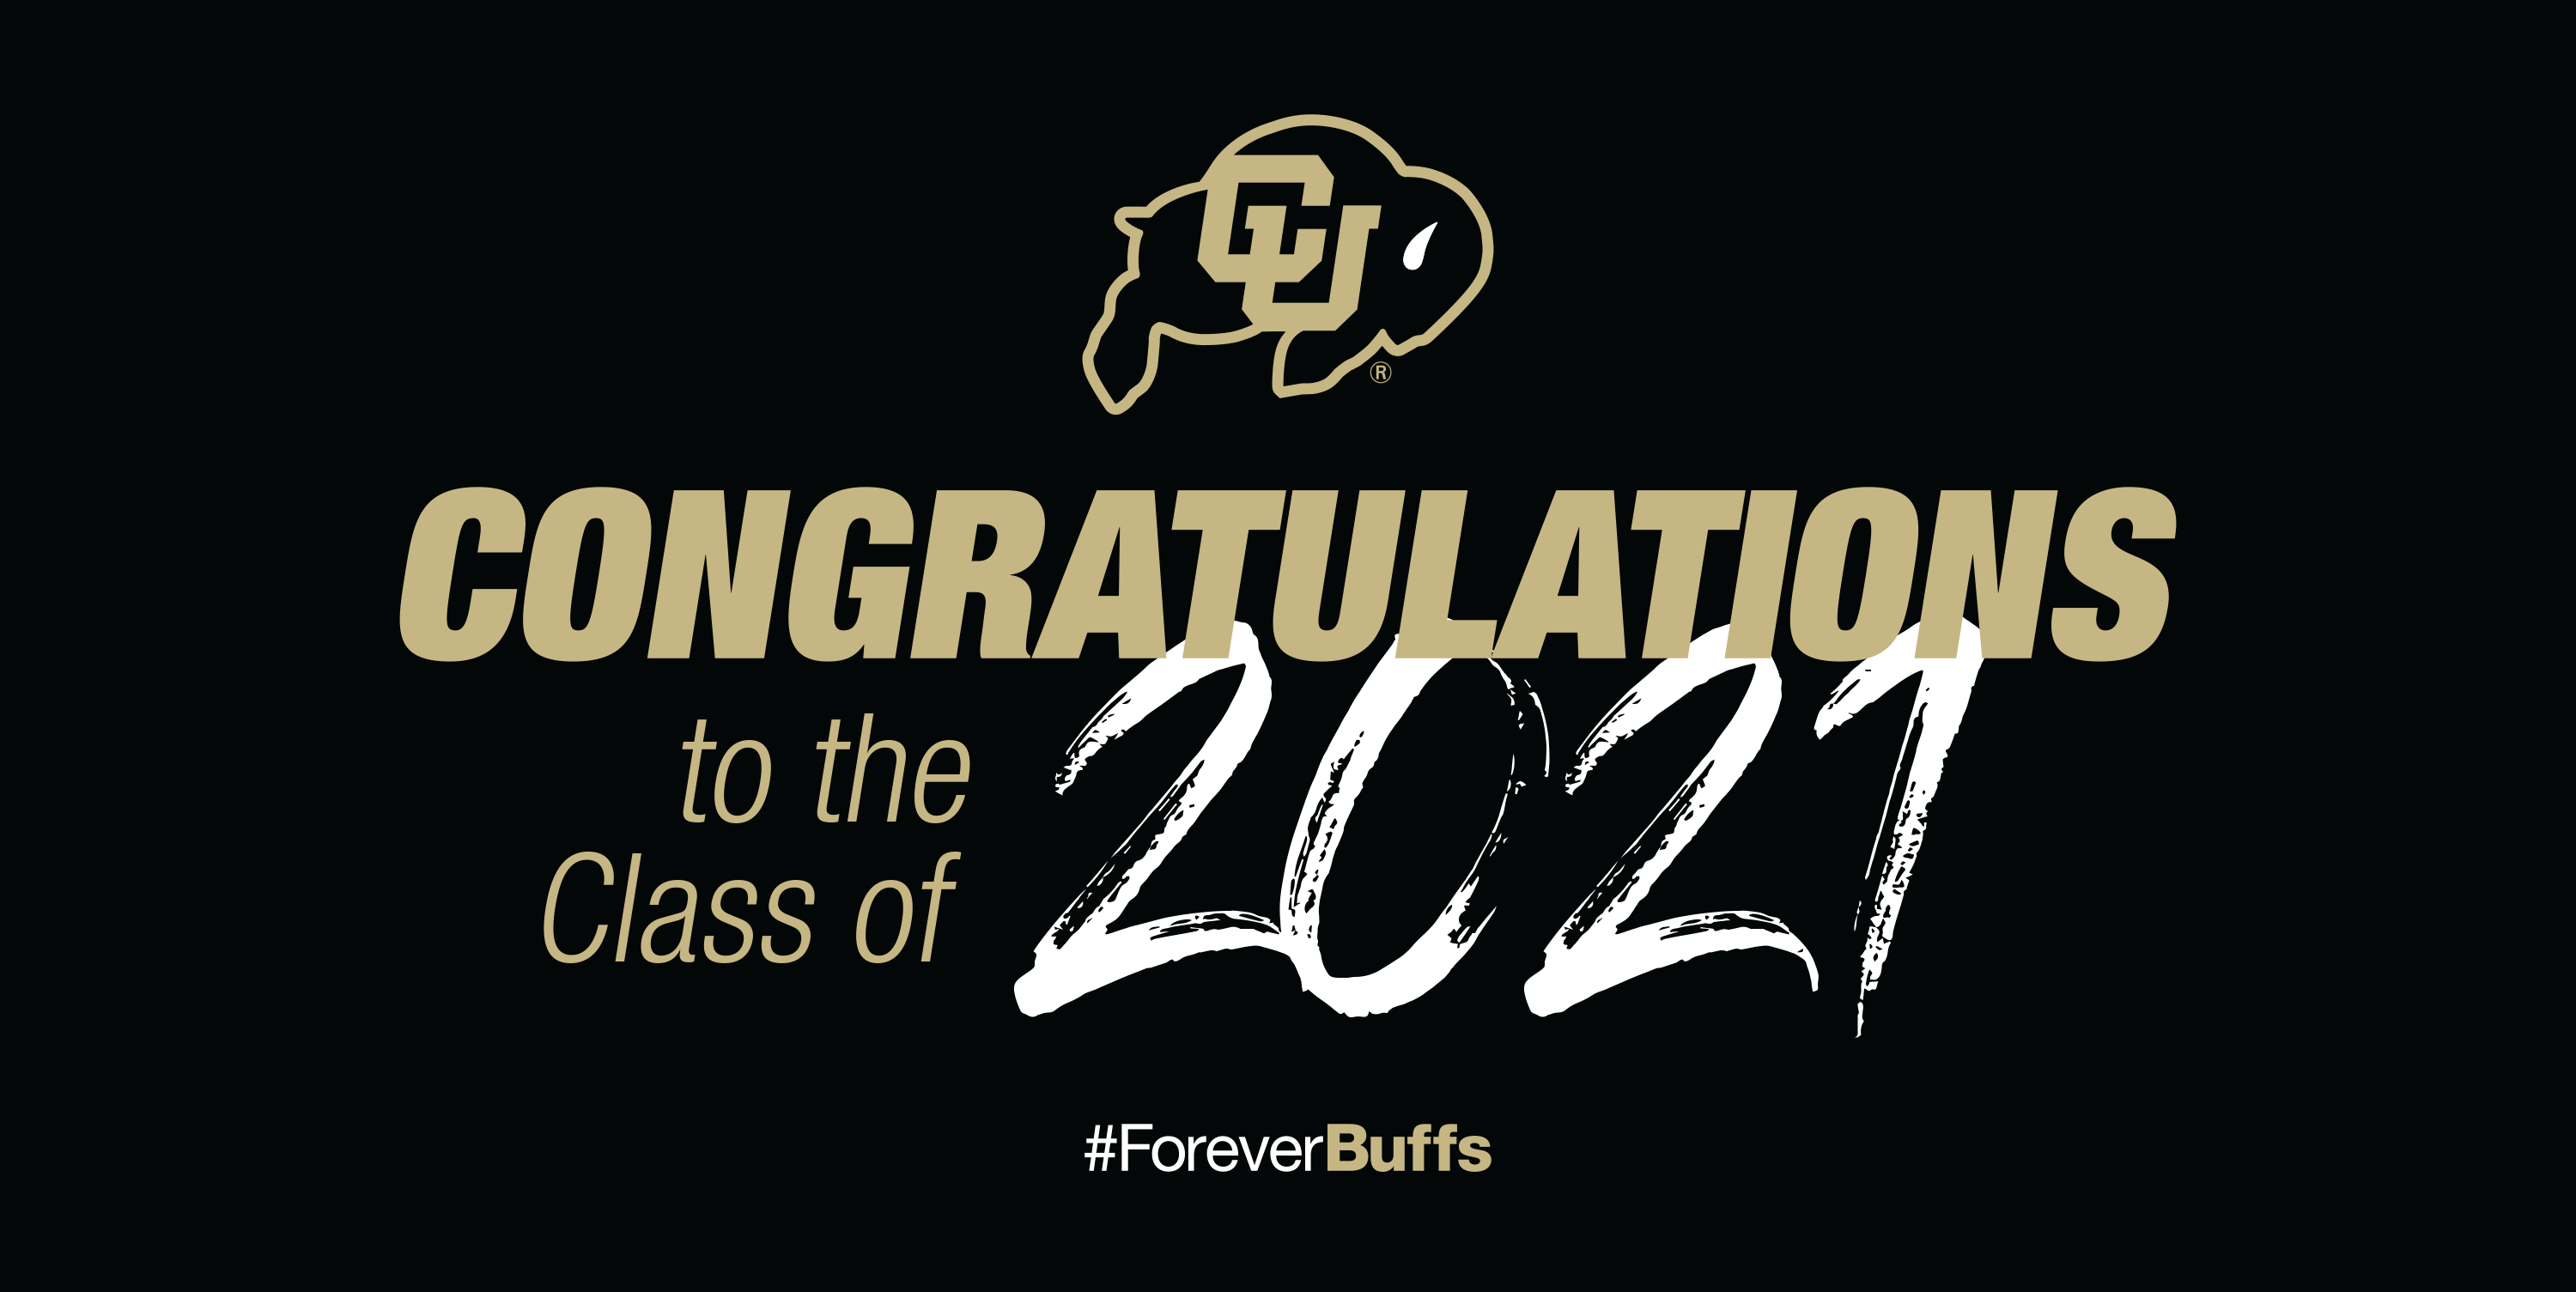 Congratulations to the class of 2021! #ForeverBuffs